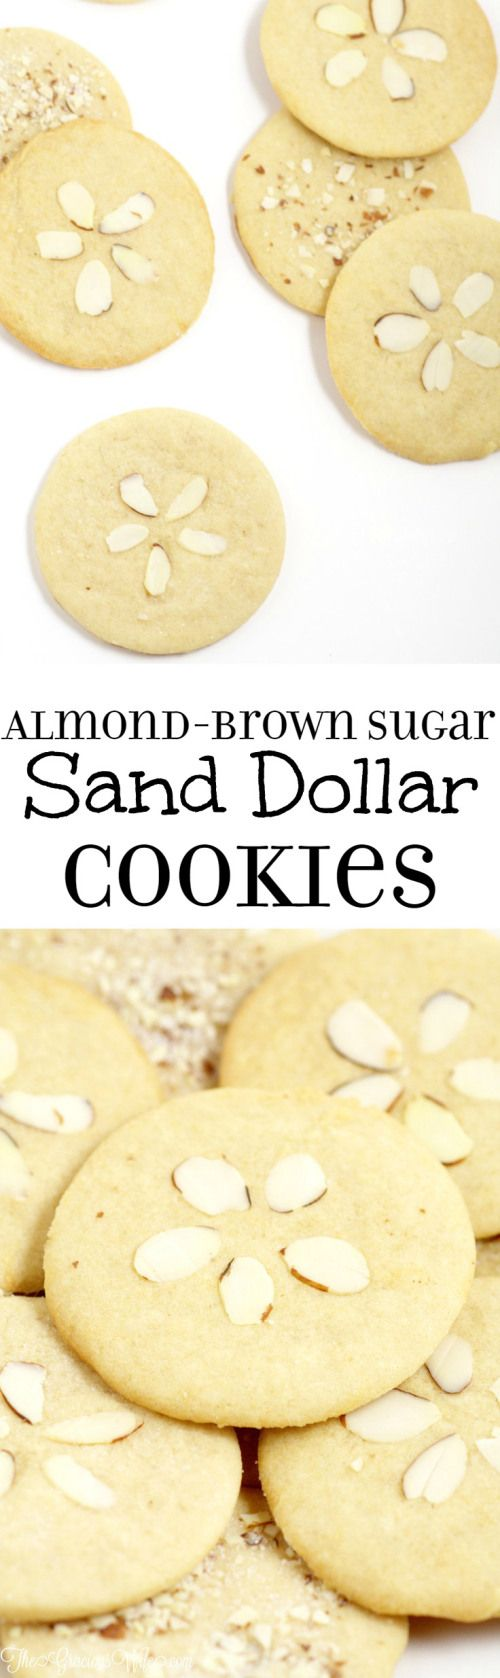 Sand Dollar Almond Brown Sugar Cookies Recipe - an easy cookies recipe from scratch. These are just like sugar cookies, only better!